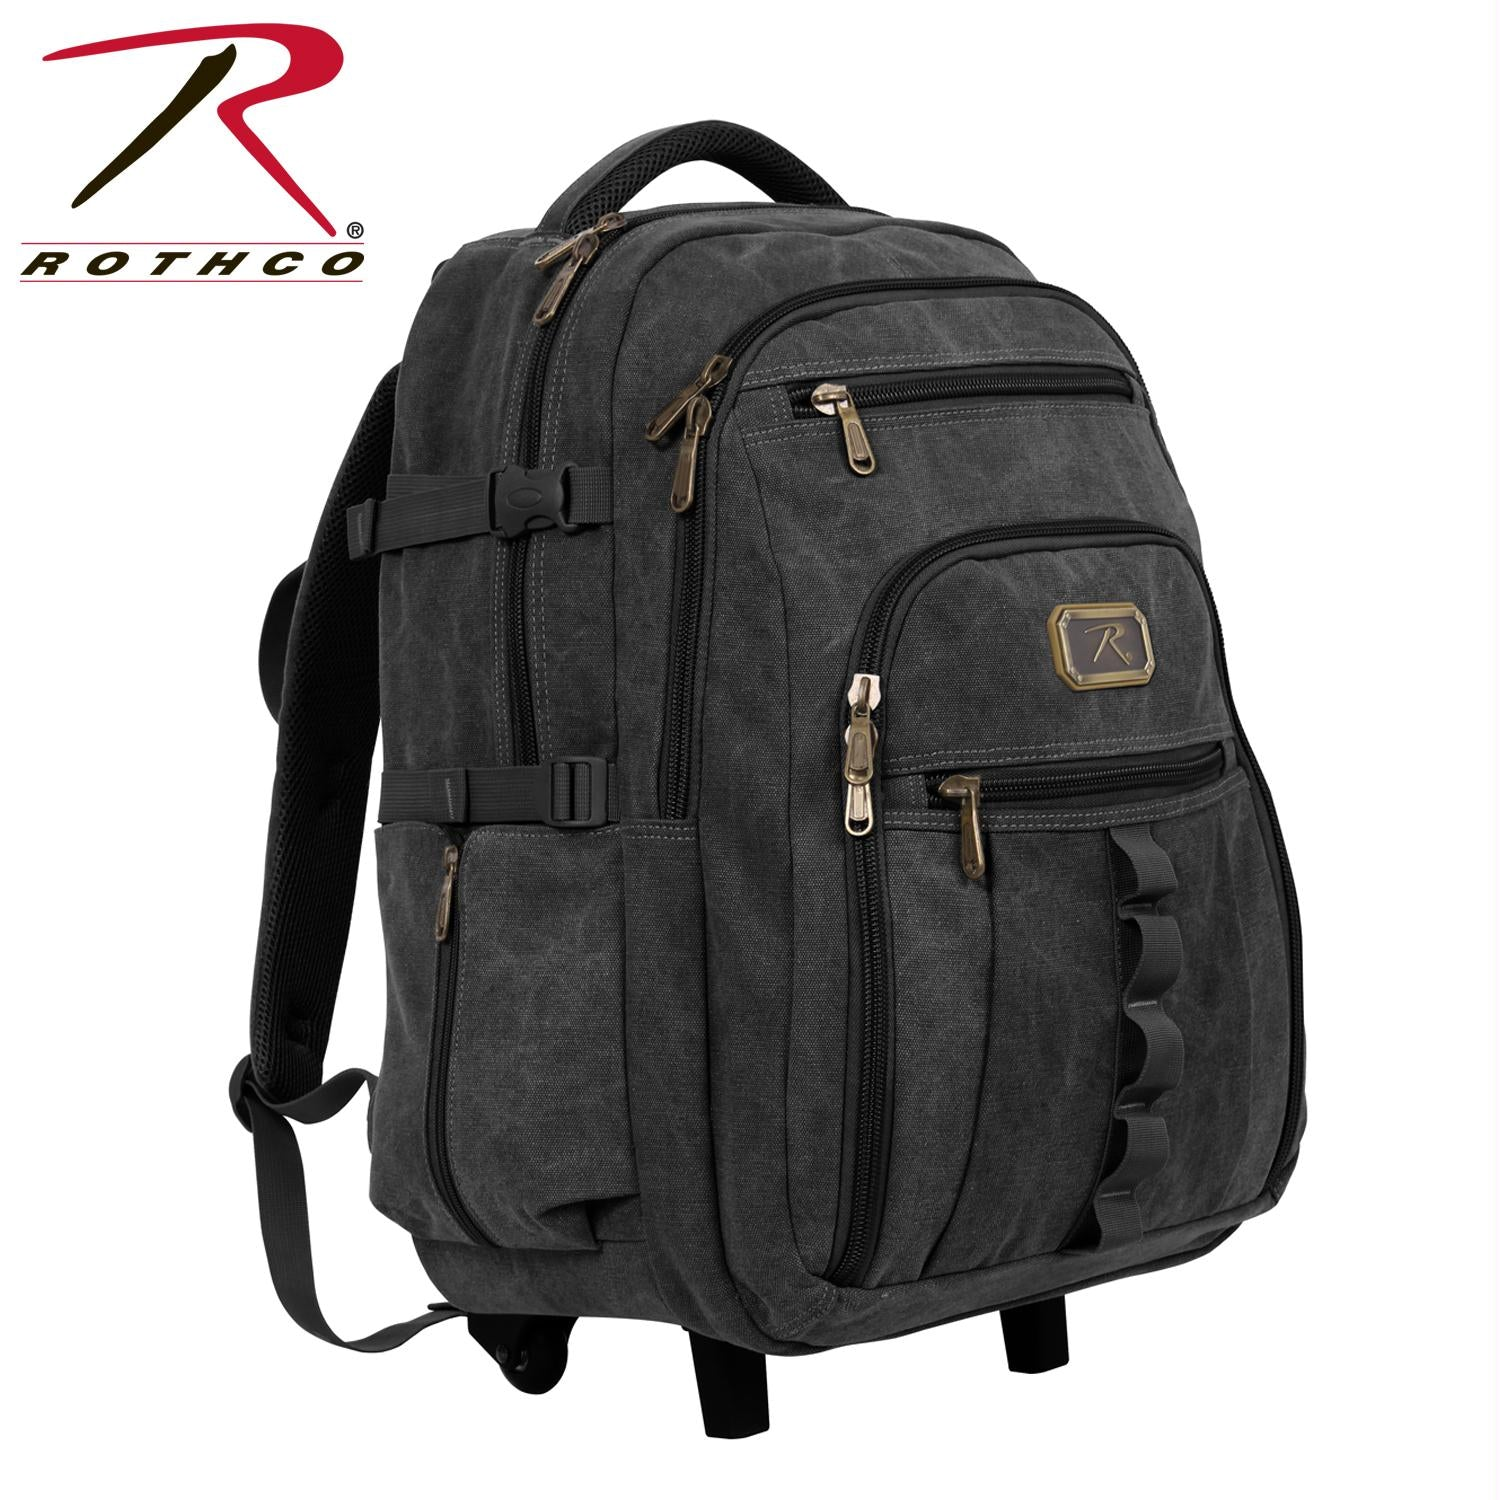 Rothco Rolling Canvas Backpack - Black